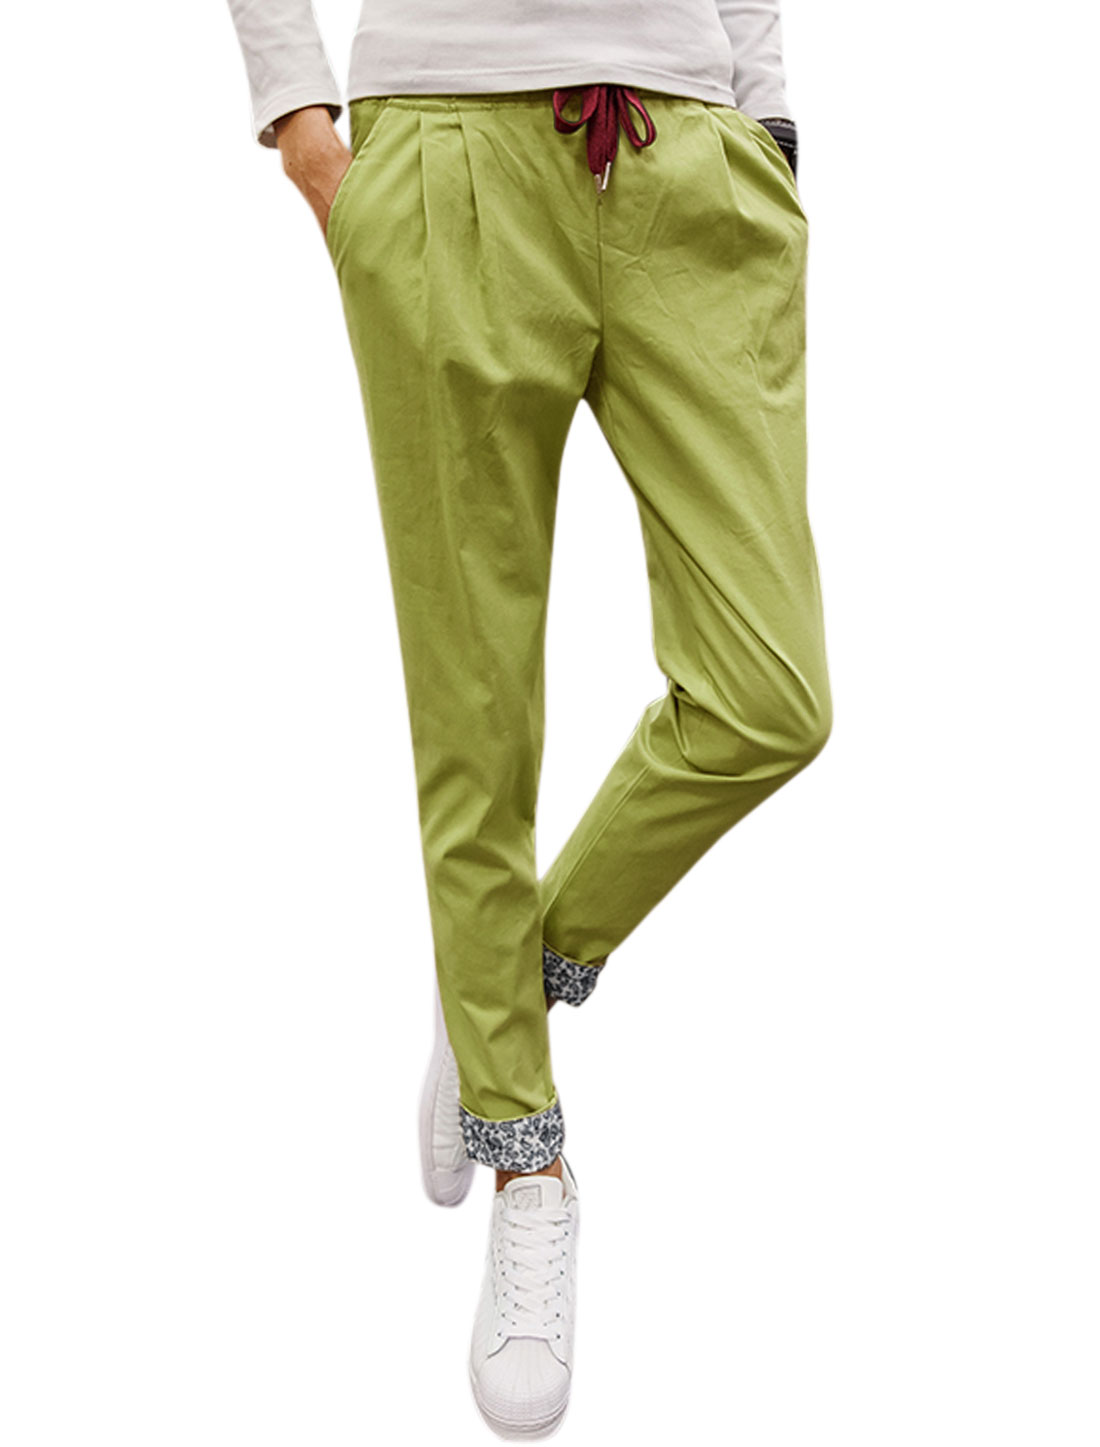 Man Side Pockets Slim Fit Tapered Elastic Drawstring Pants Green W32